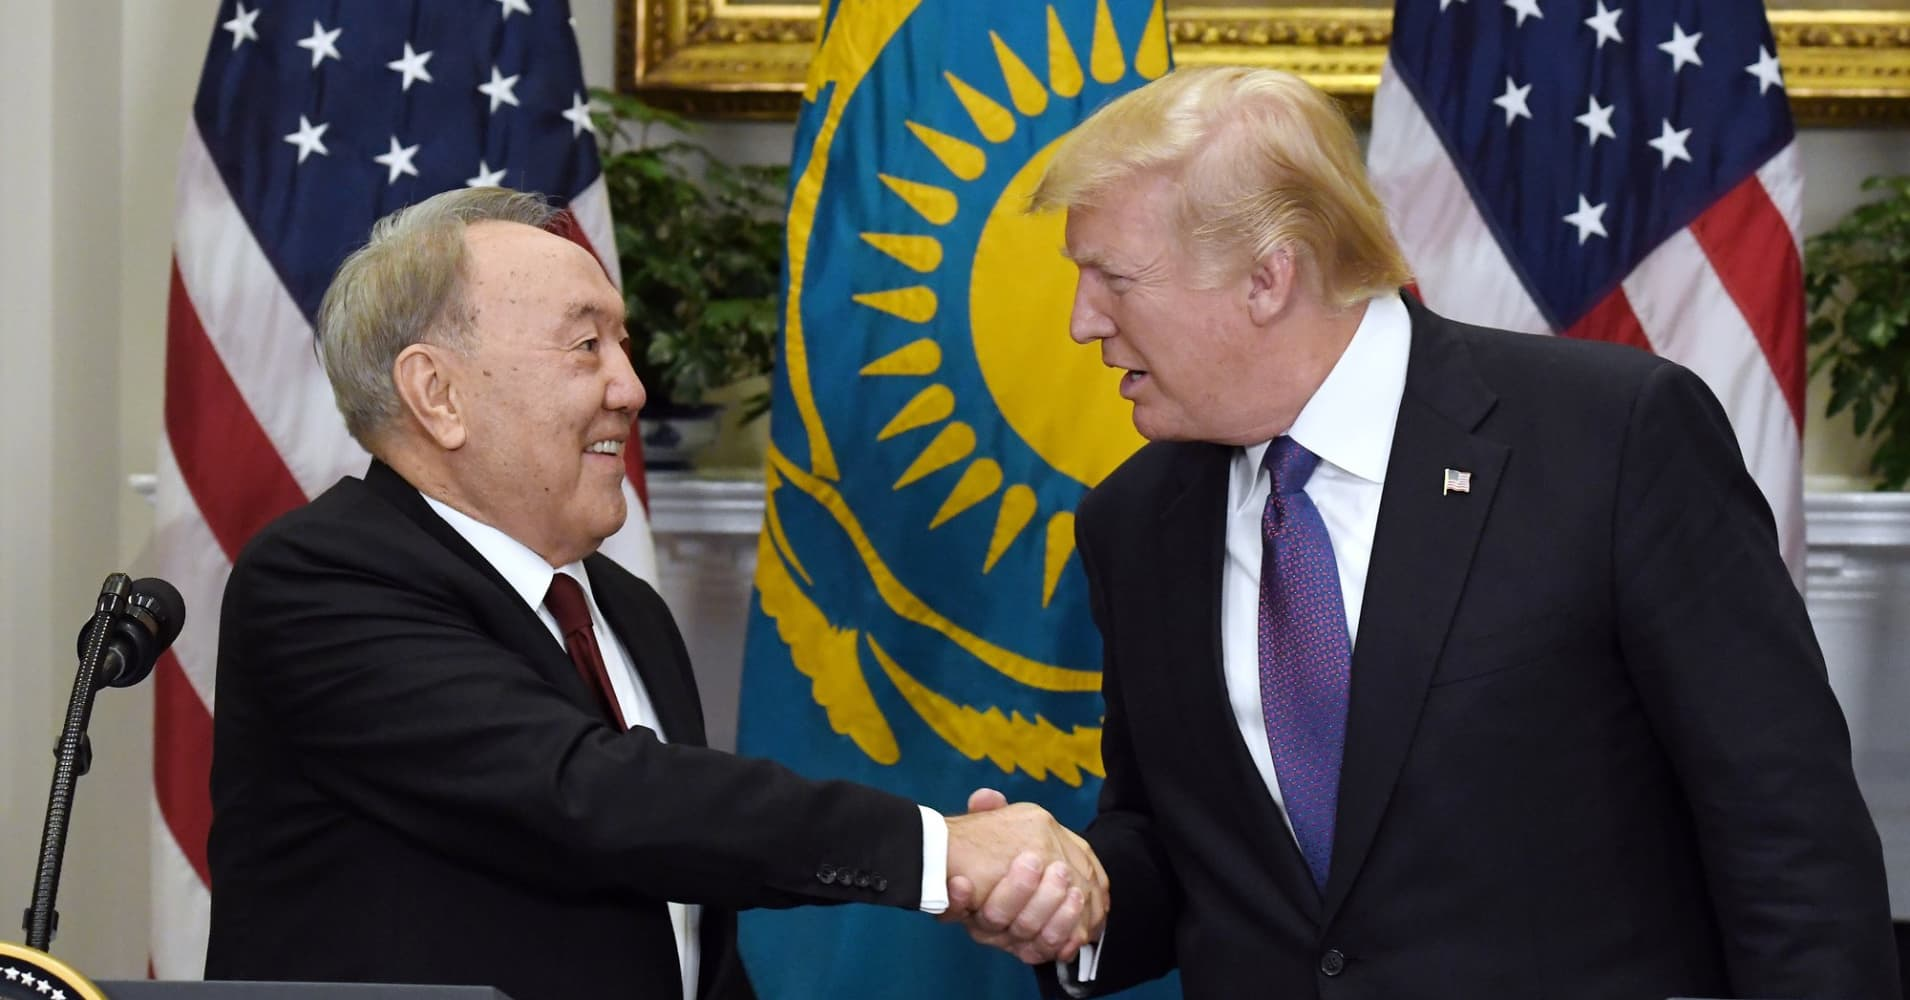 Kazakhstan is a 'kleptocracy' ruled by an autocrat. It's also an increasingly important strategic ally